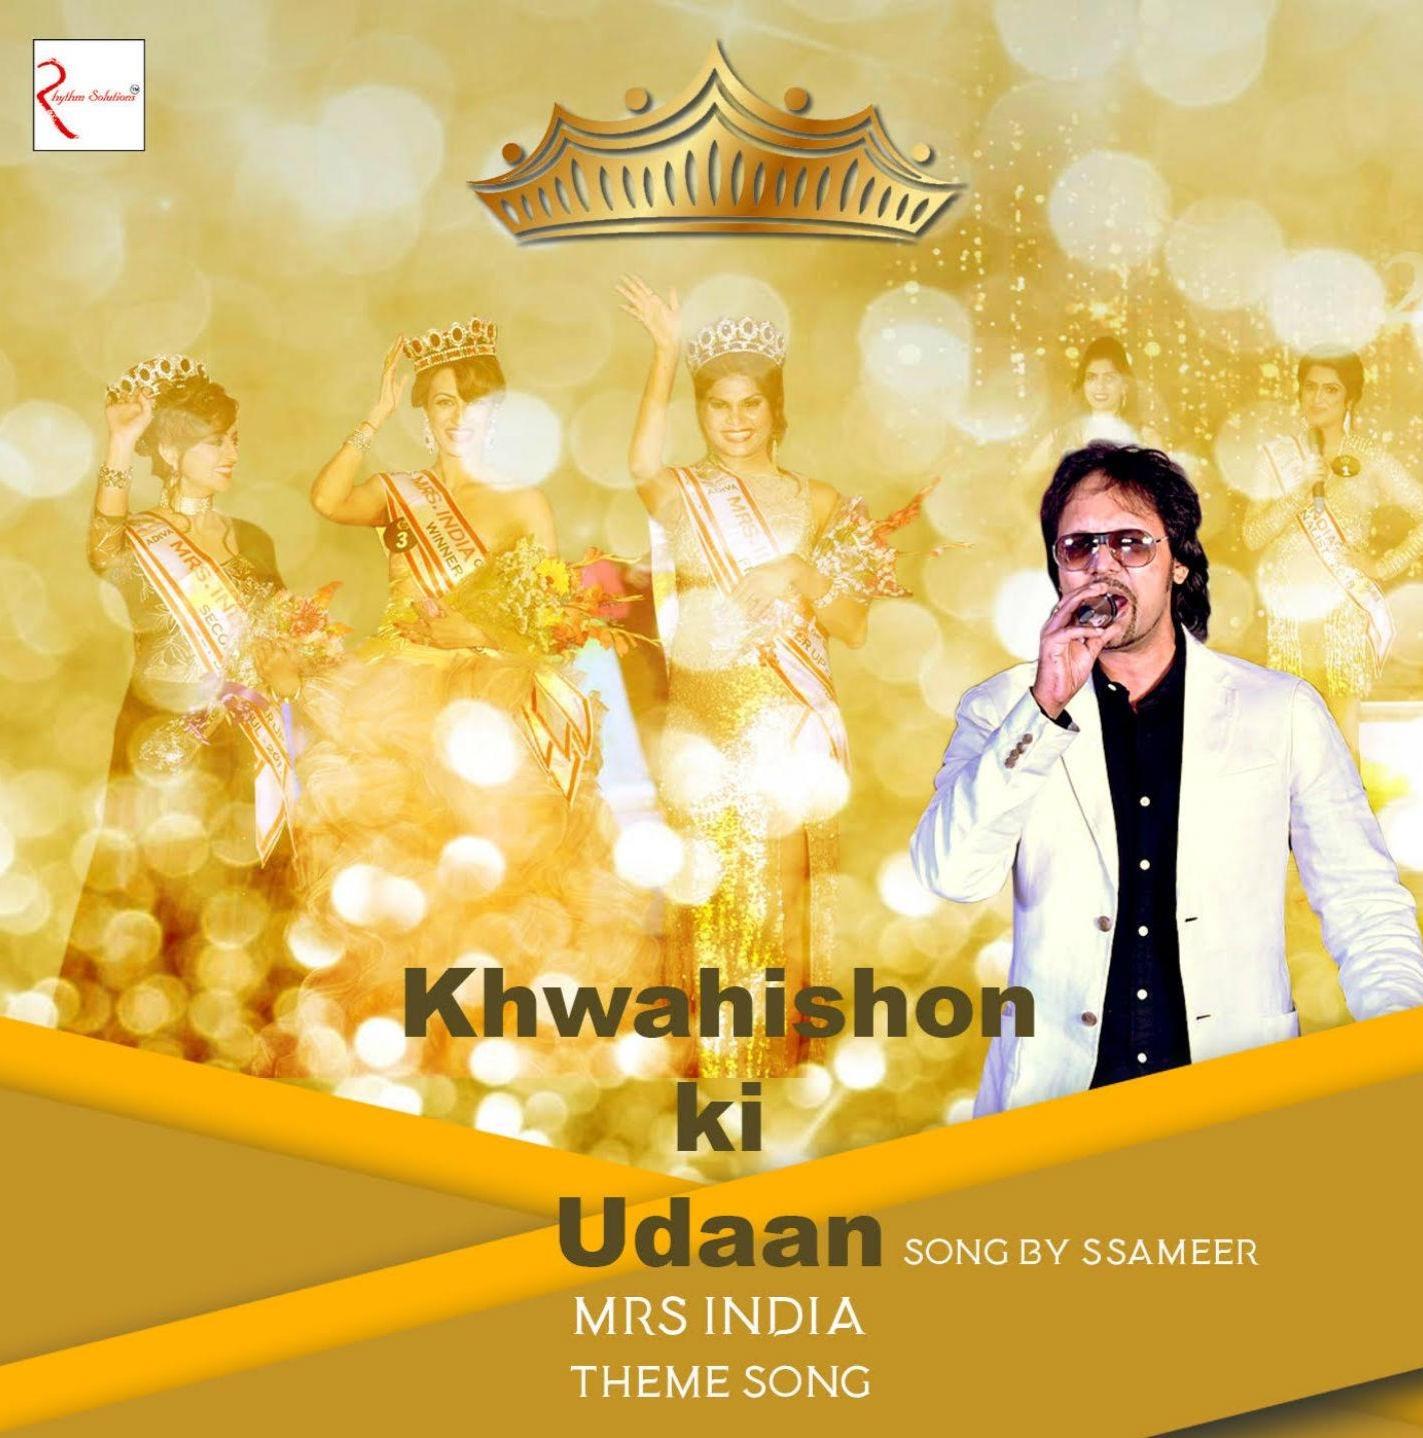 Khwahishon Ki Udaan (Mrs India Theme Song)